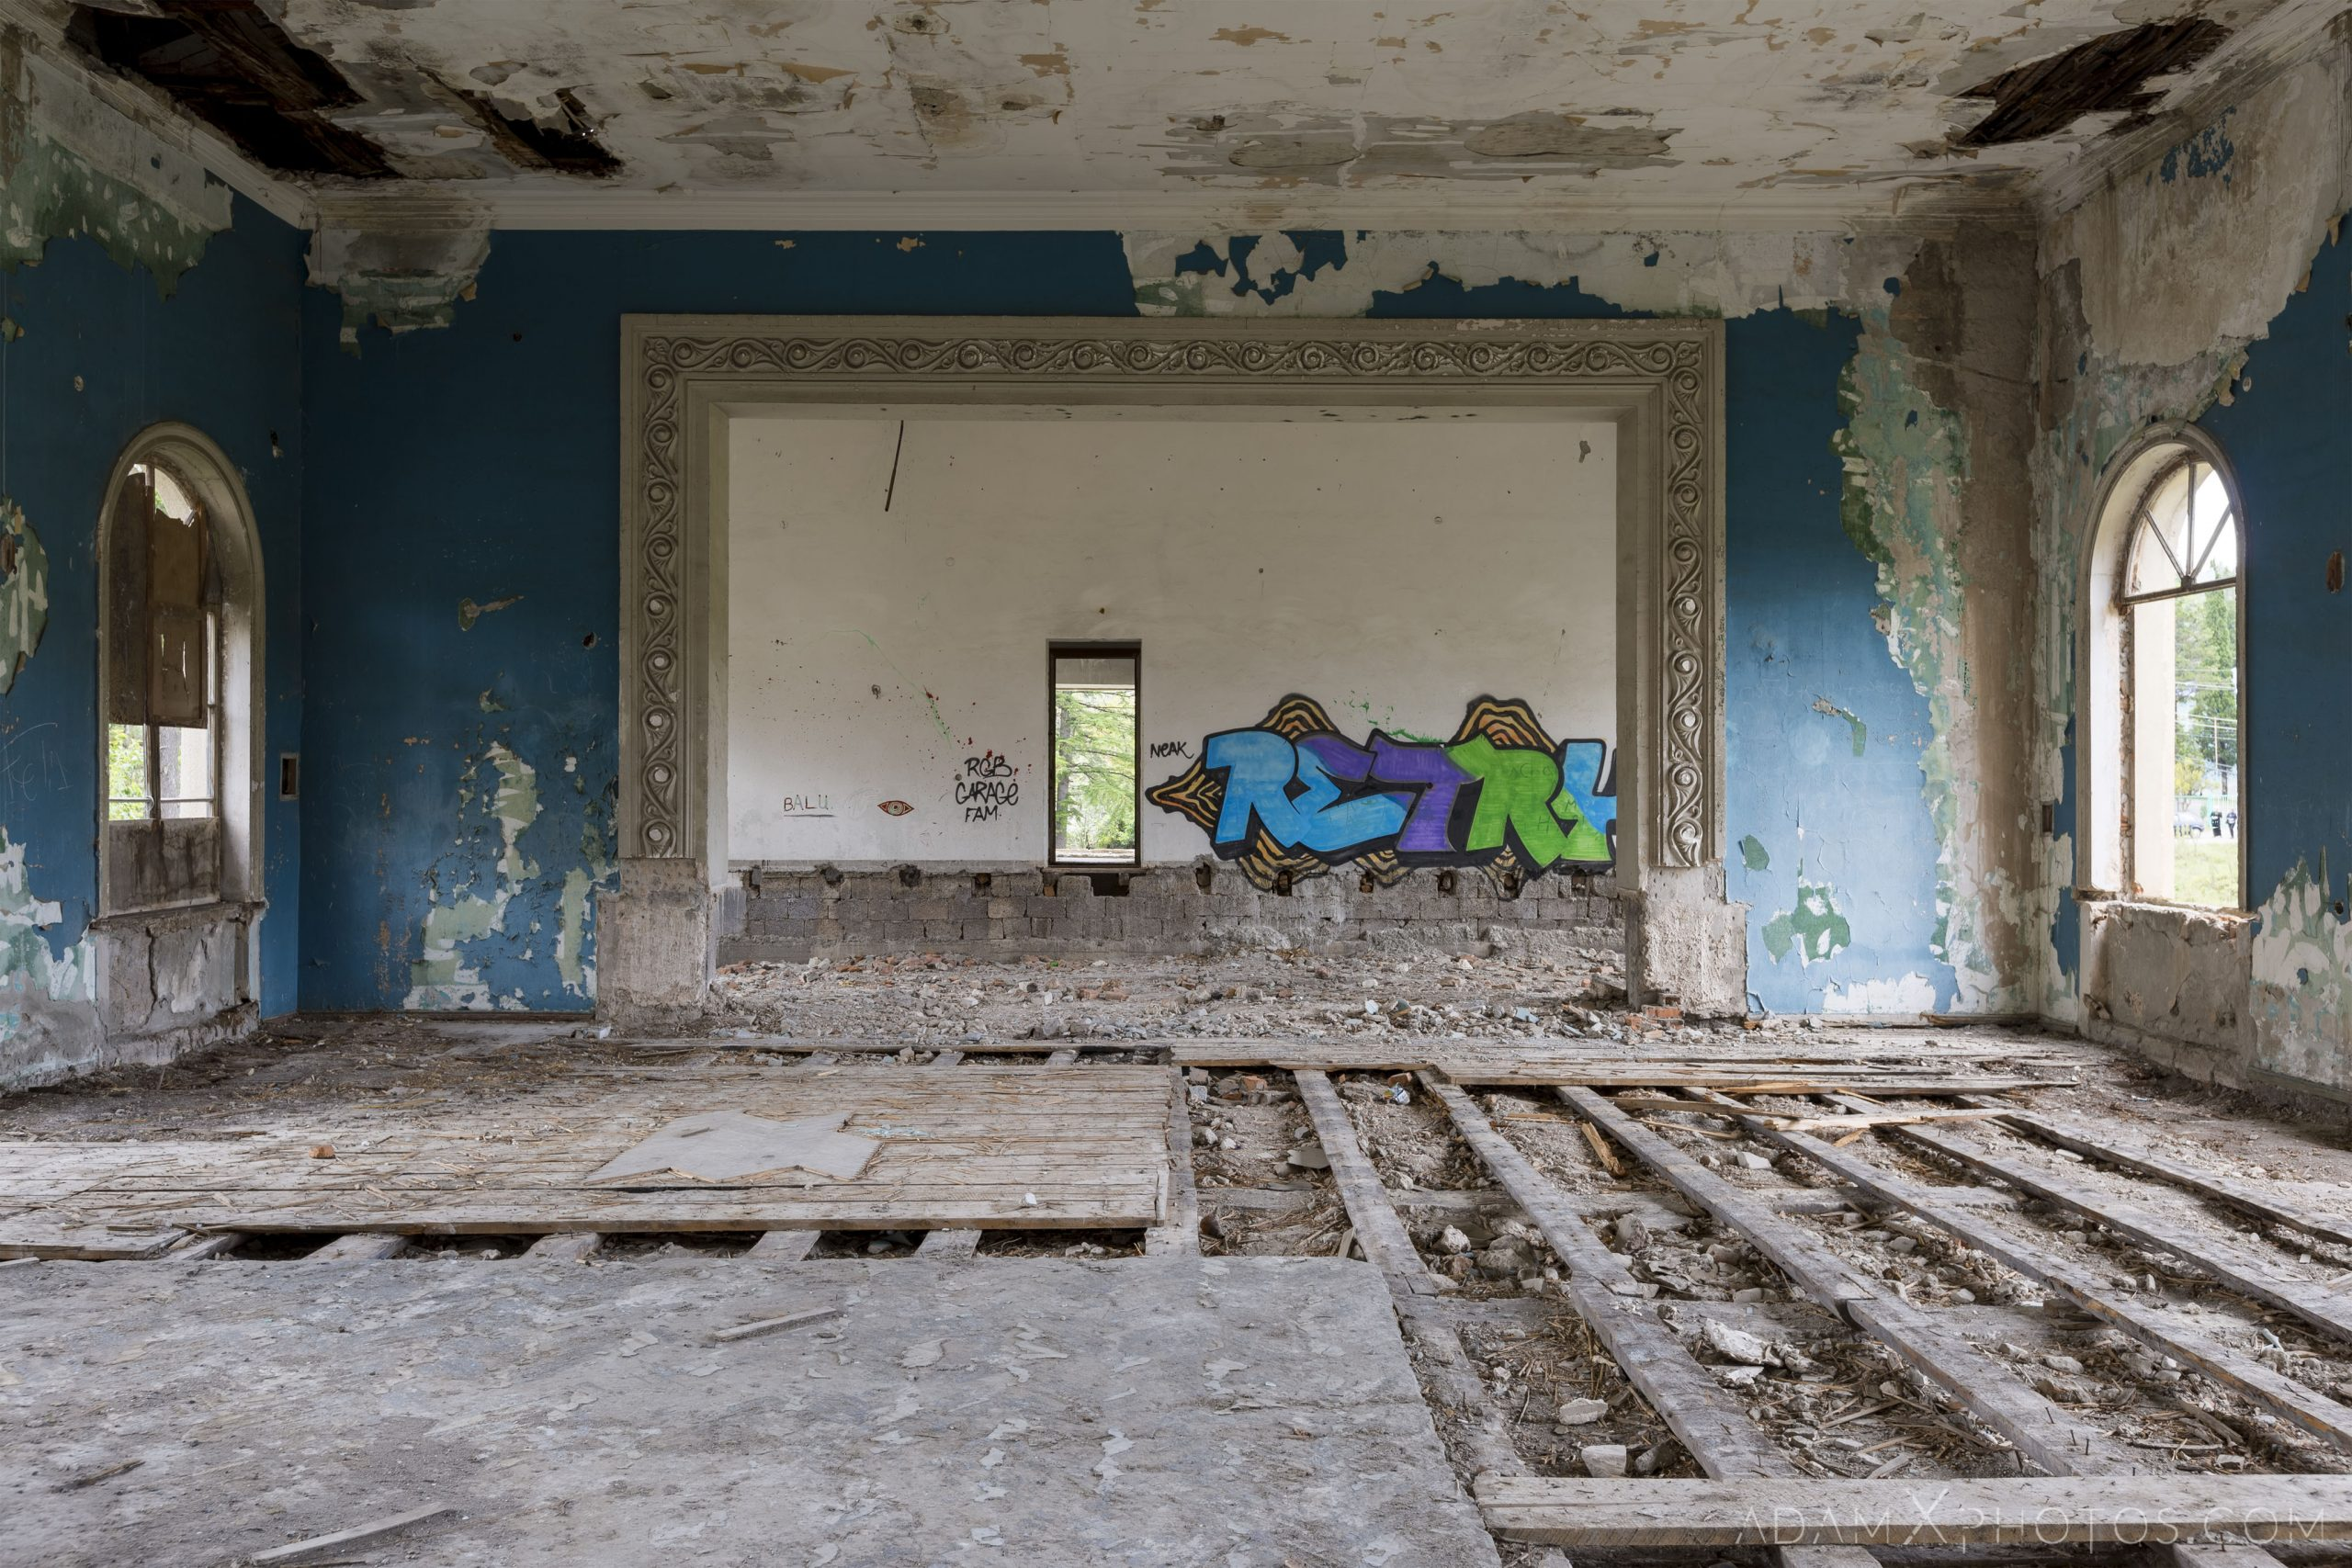 trashed room blue flooring Blue stairs ceiling hole circular graffiti Sanatorium Iveria Tskaltubo Georgia Soviet era Adam X Urbex Urban Exploration 2018 Abandoned Access History decay ruins lost forgotten derelict location creepy haunting eerie security